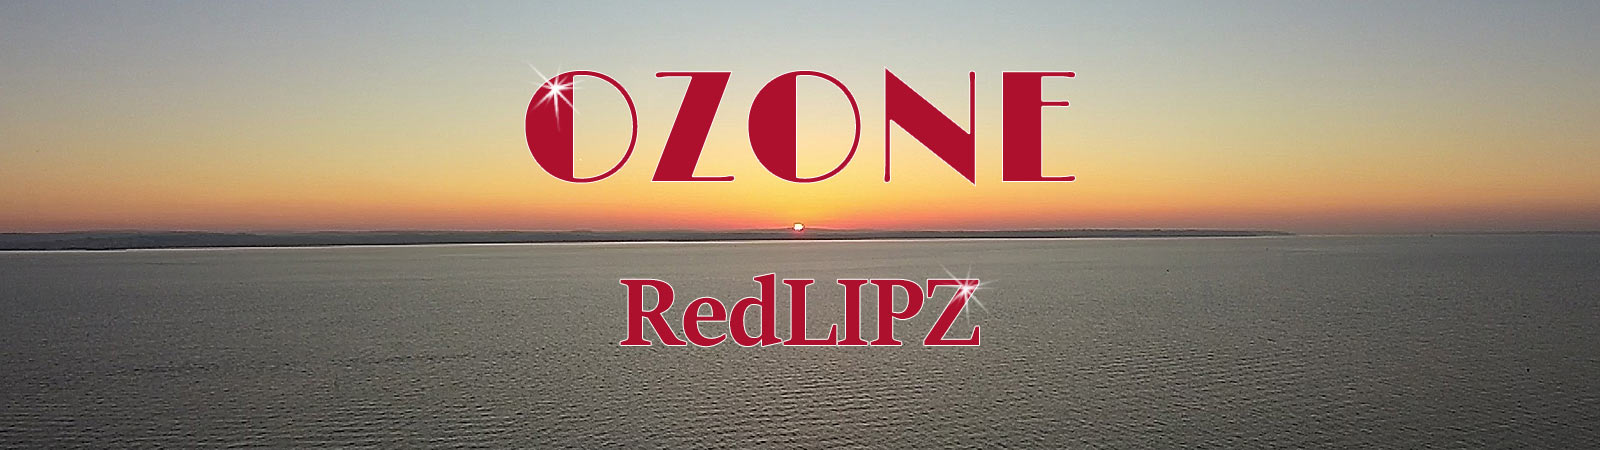 Ozone is a single by Redlipz